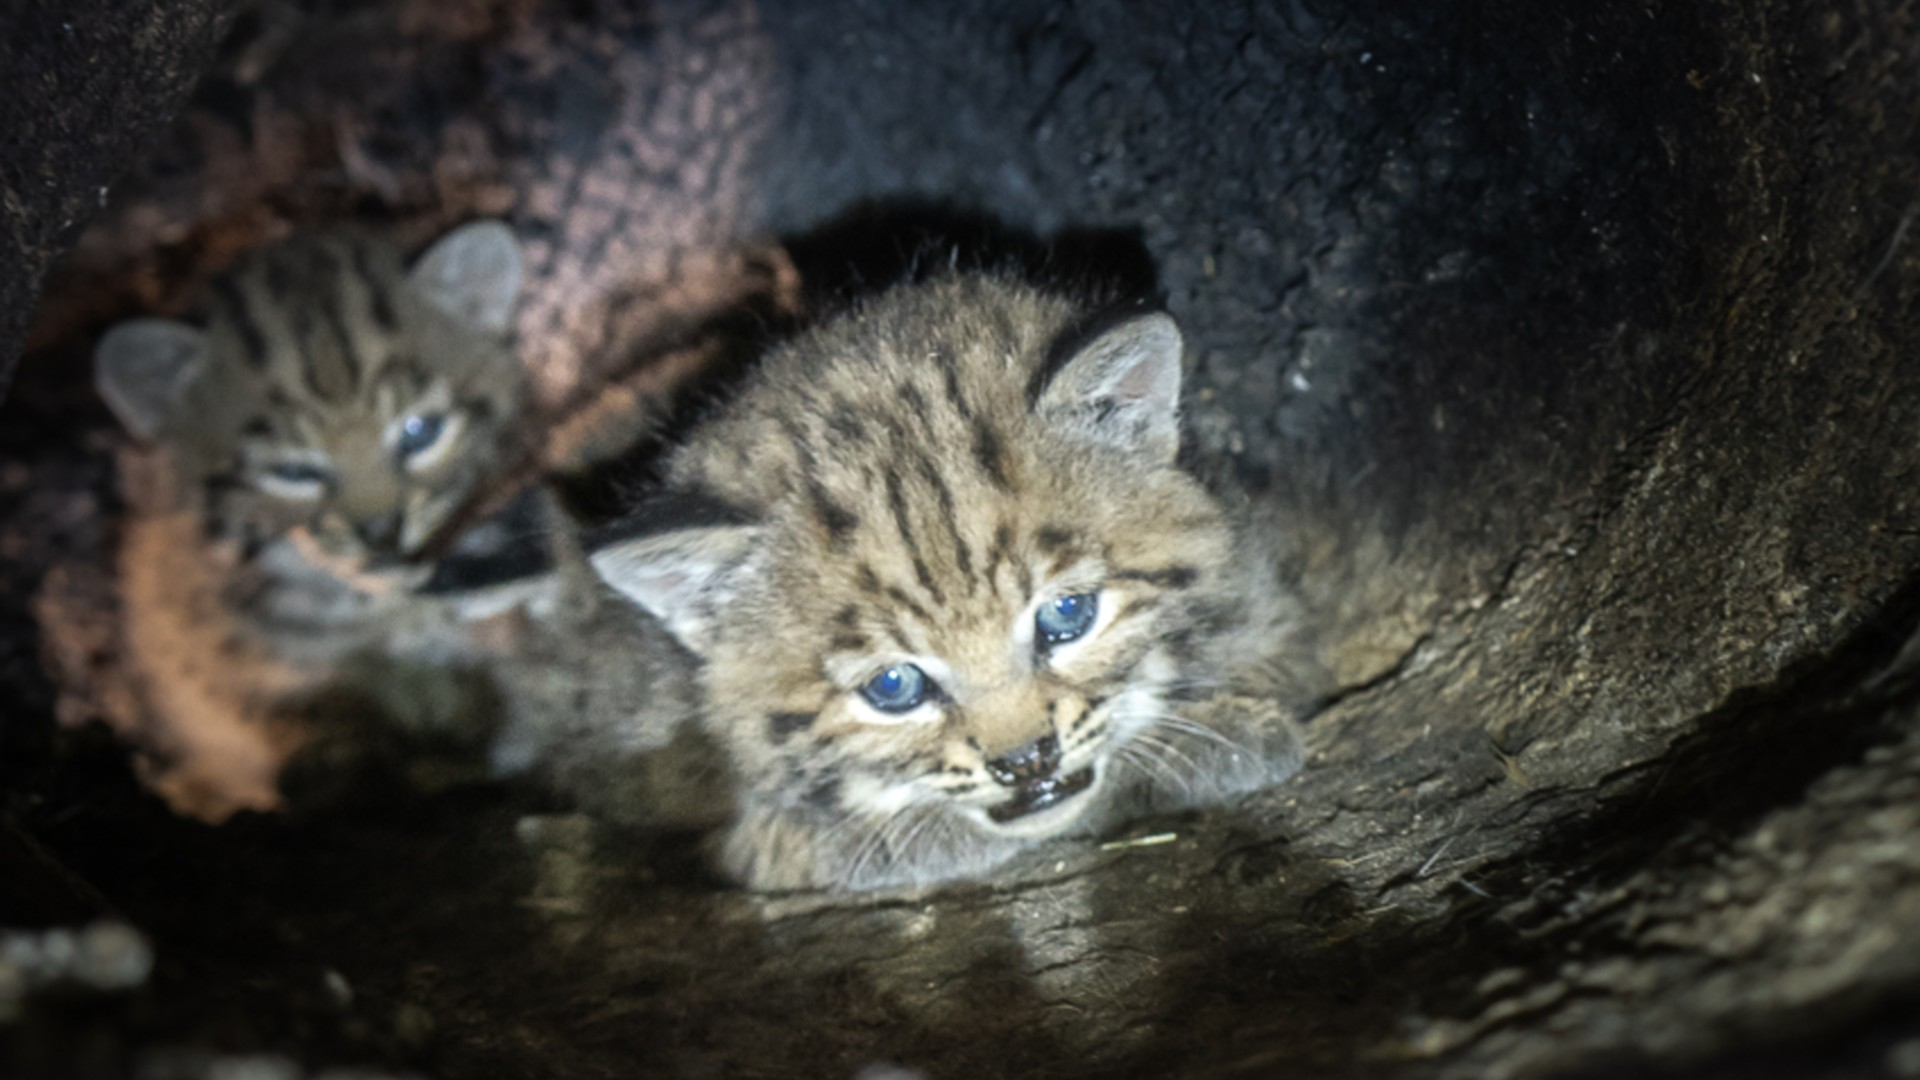 Using the mom's (B-370) GPS collar, the National Park Service biologists located a female bobcat in a cavity of a large oak tree on April 15, 2021. She was in an area that was intensely burned during the Woolsey Fire that swept through Calabasas and other areas in the Santa Monica Mountains in November 2018.